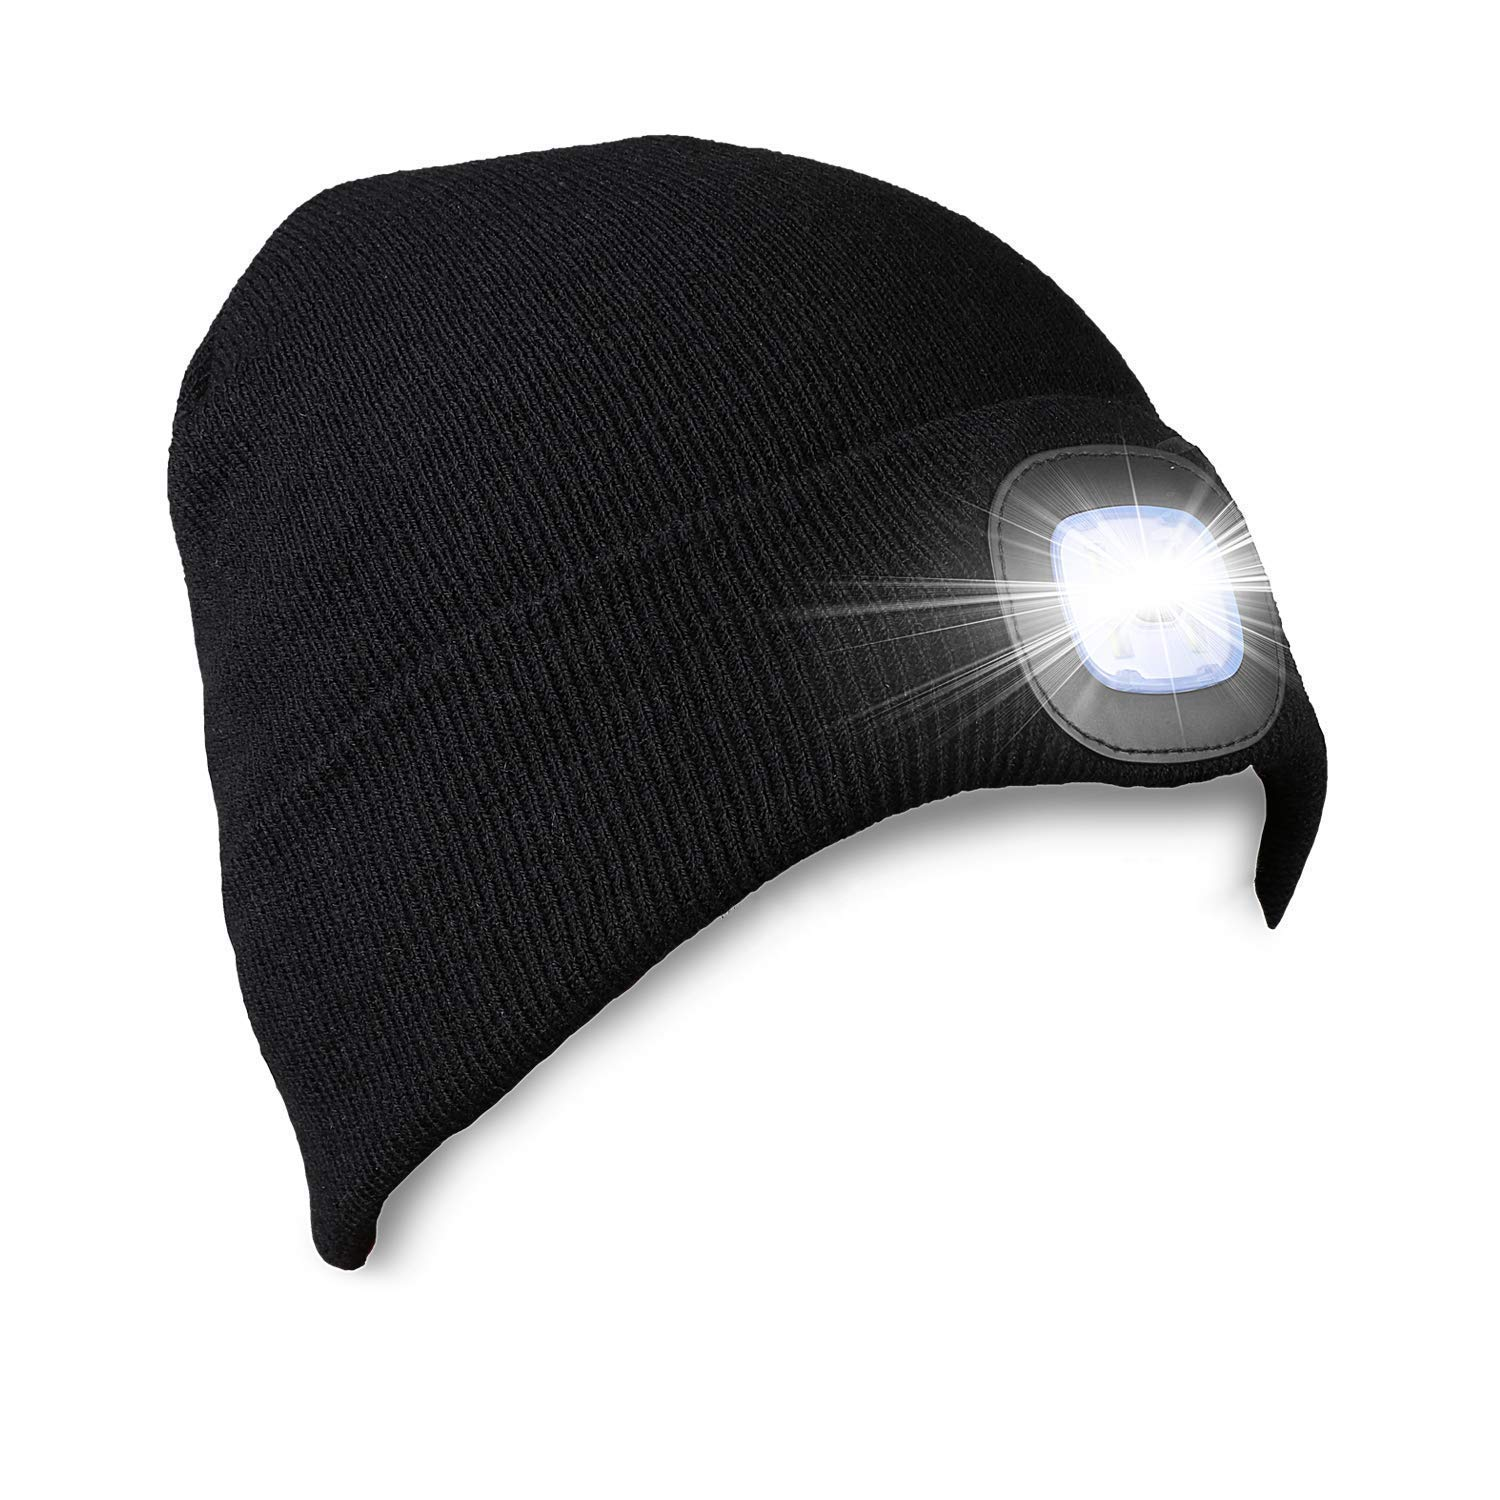 TANGCISON LED Beanie Hat with Light   USB Rechargeable Light Up Hat with Adjustable Brightness   Ultra Soft Material Keeps You Warm and Cozy   Find Your Way in The Dark and be Noticed by Vehicles